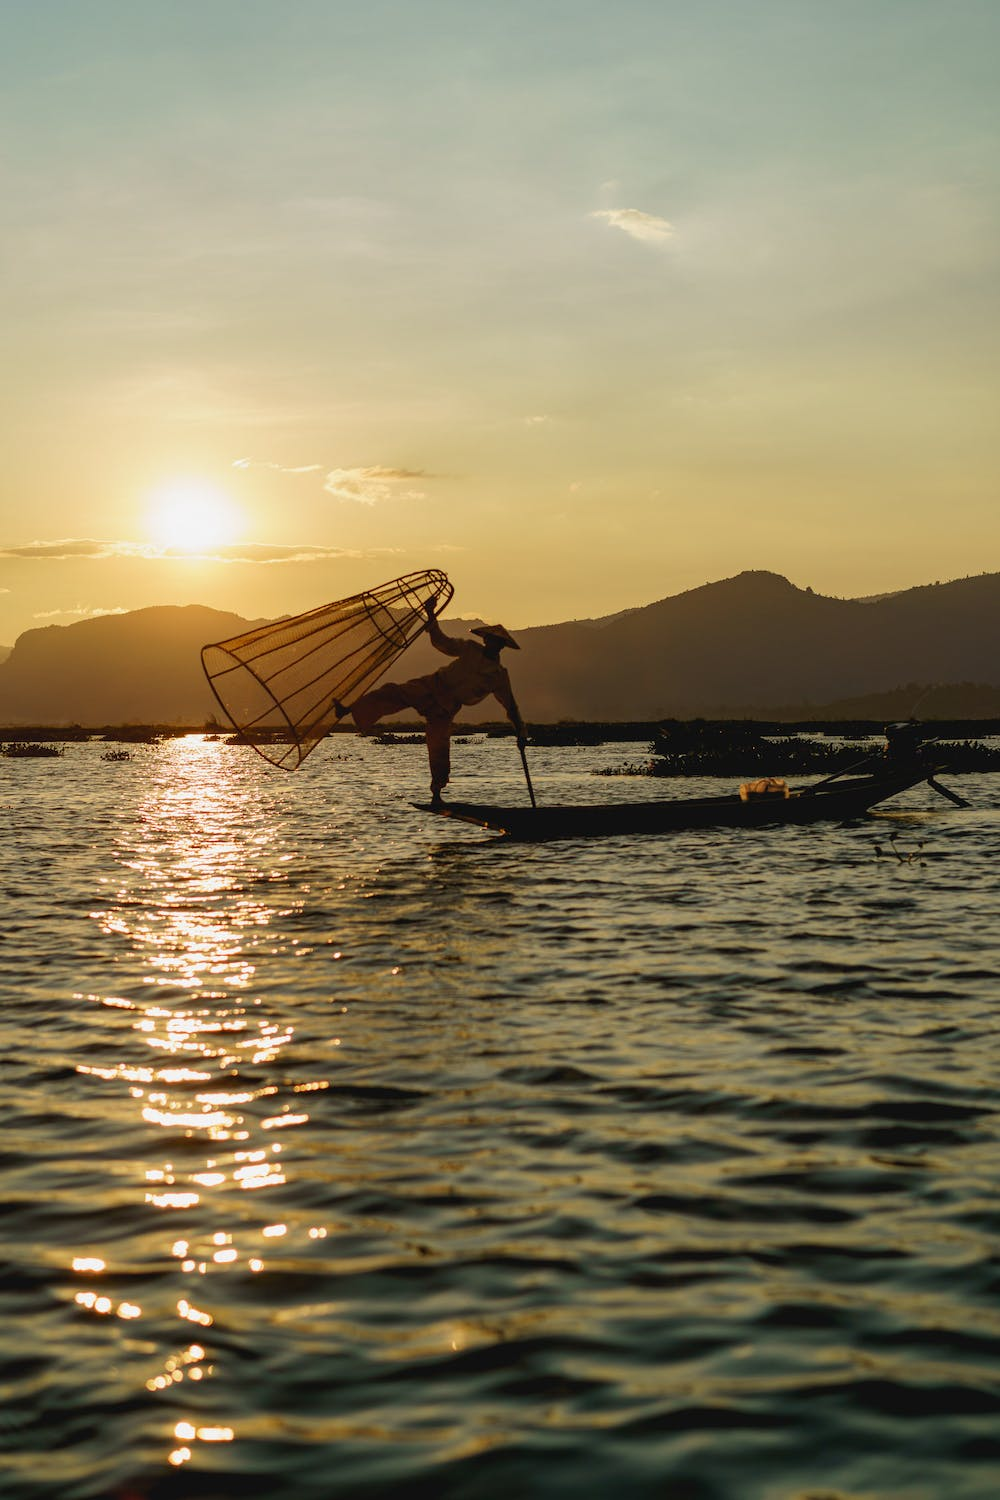 Famous dancing fisherman standing on one foot with fishing net during sunset golden hour scene at Inle Lake Myanmar